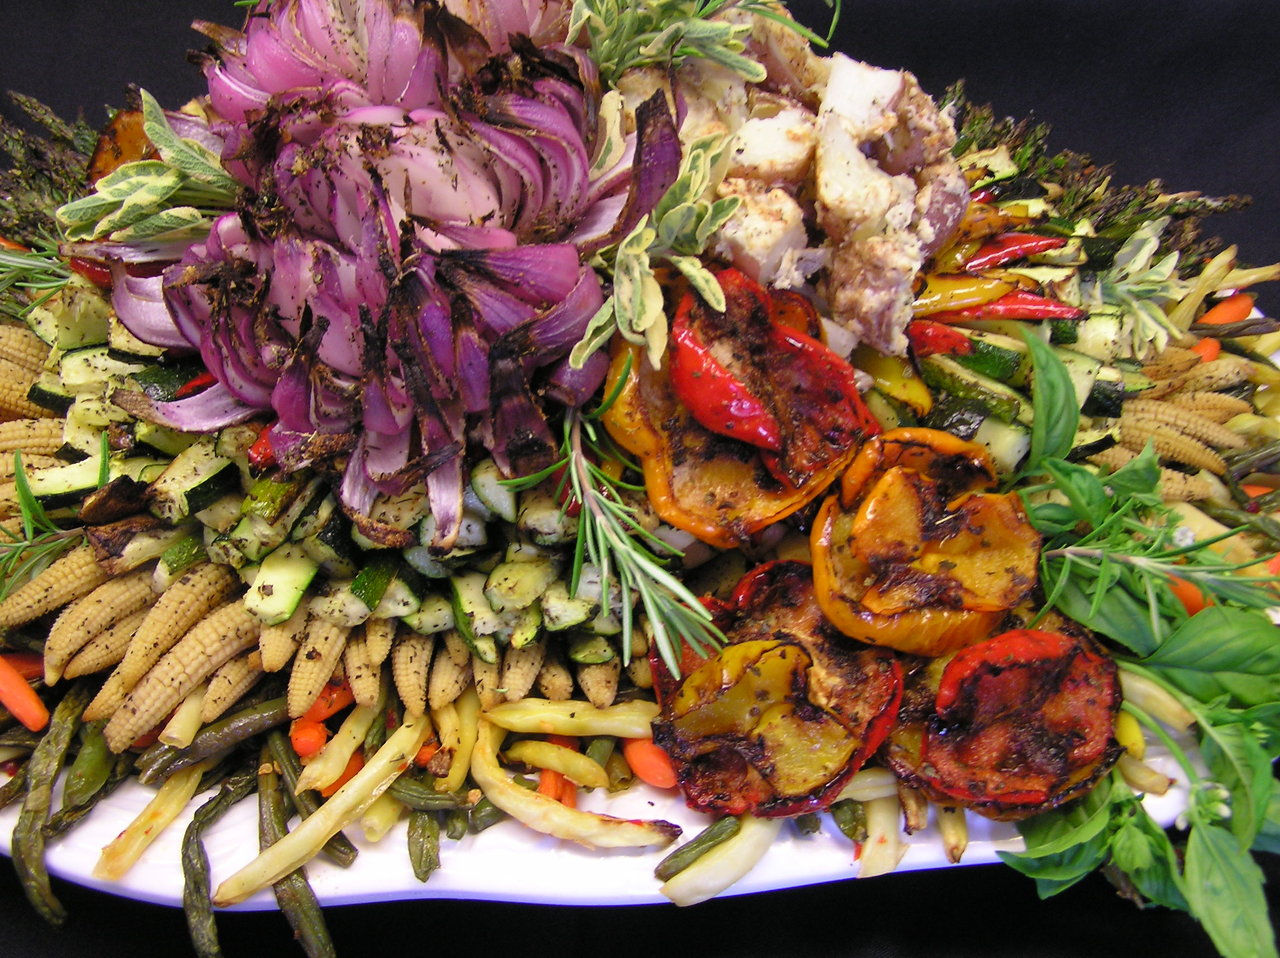 Roasted Vegetable Catering